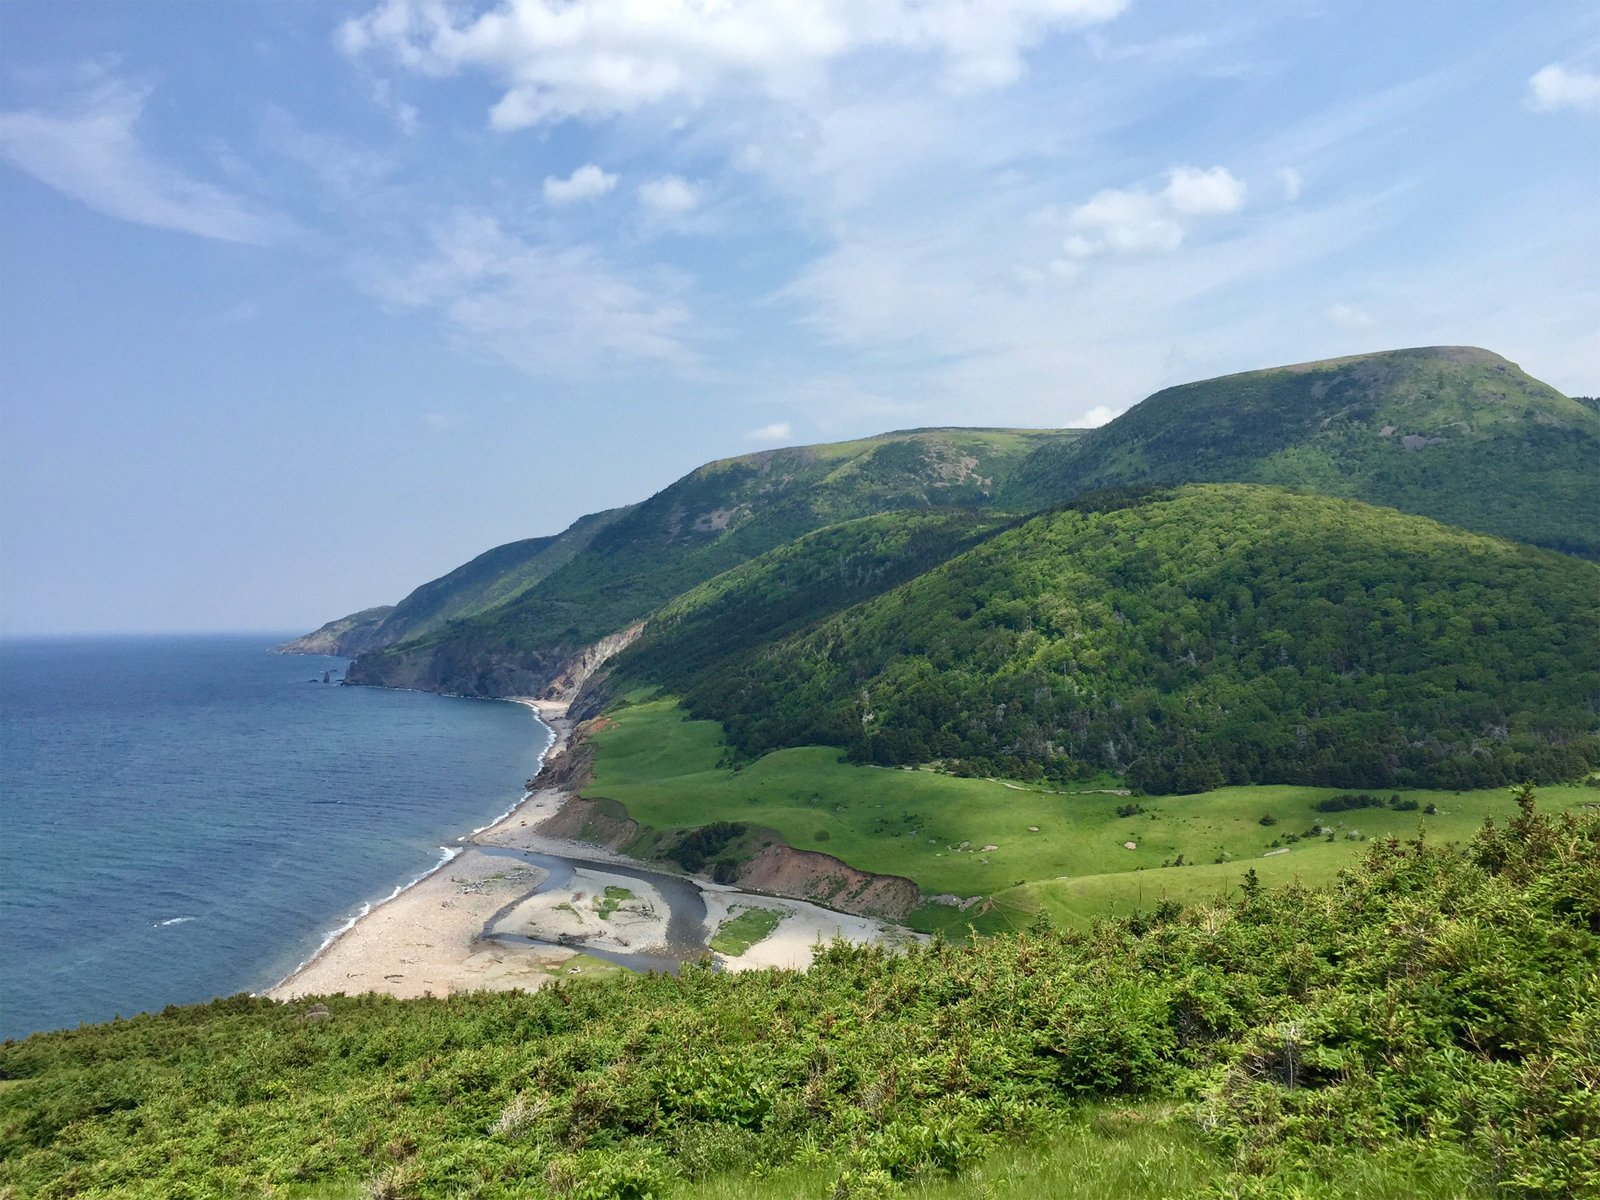 view of Pollet's Cove in Cape Breton Island, Nova Scotia, Canada